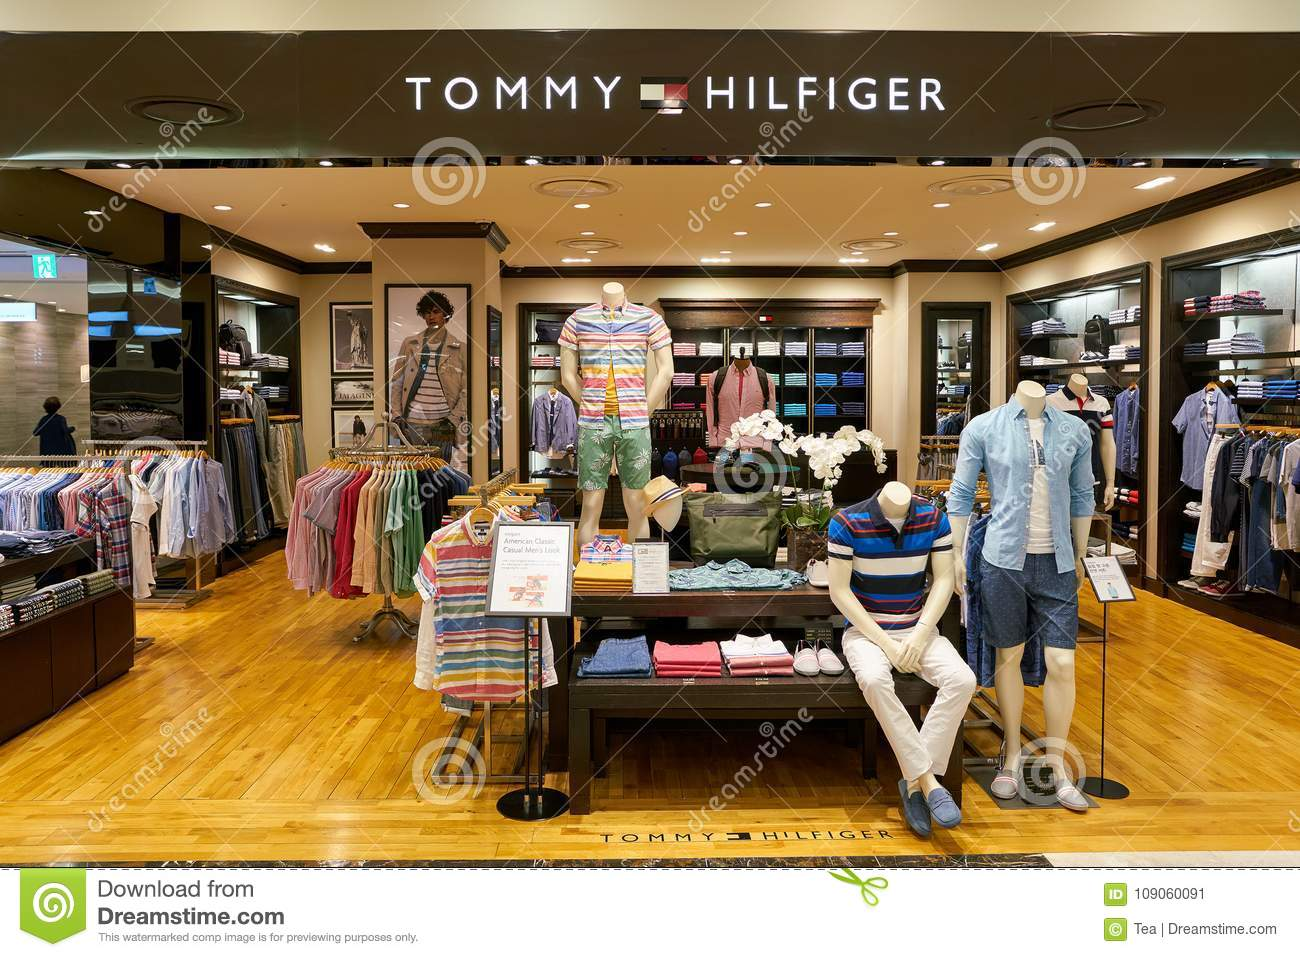 65cc98b7 BUSAN, SOUTH KOREA - MAY 28, 2017: Tommy Hilfiger store at Lotte Department  Store